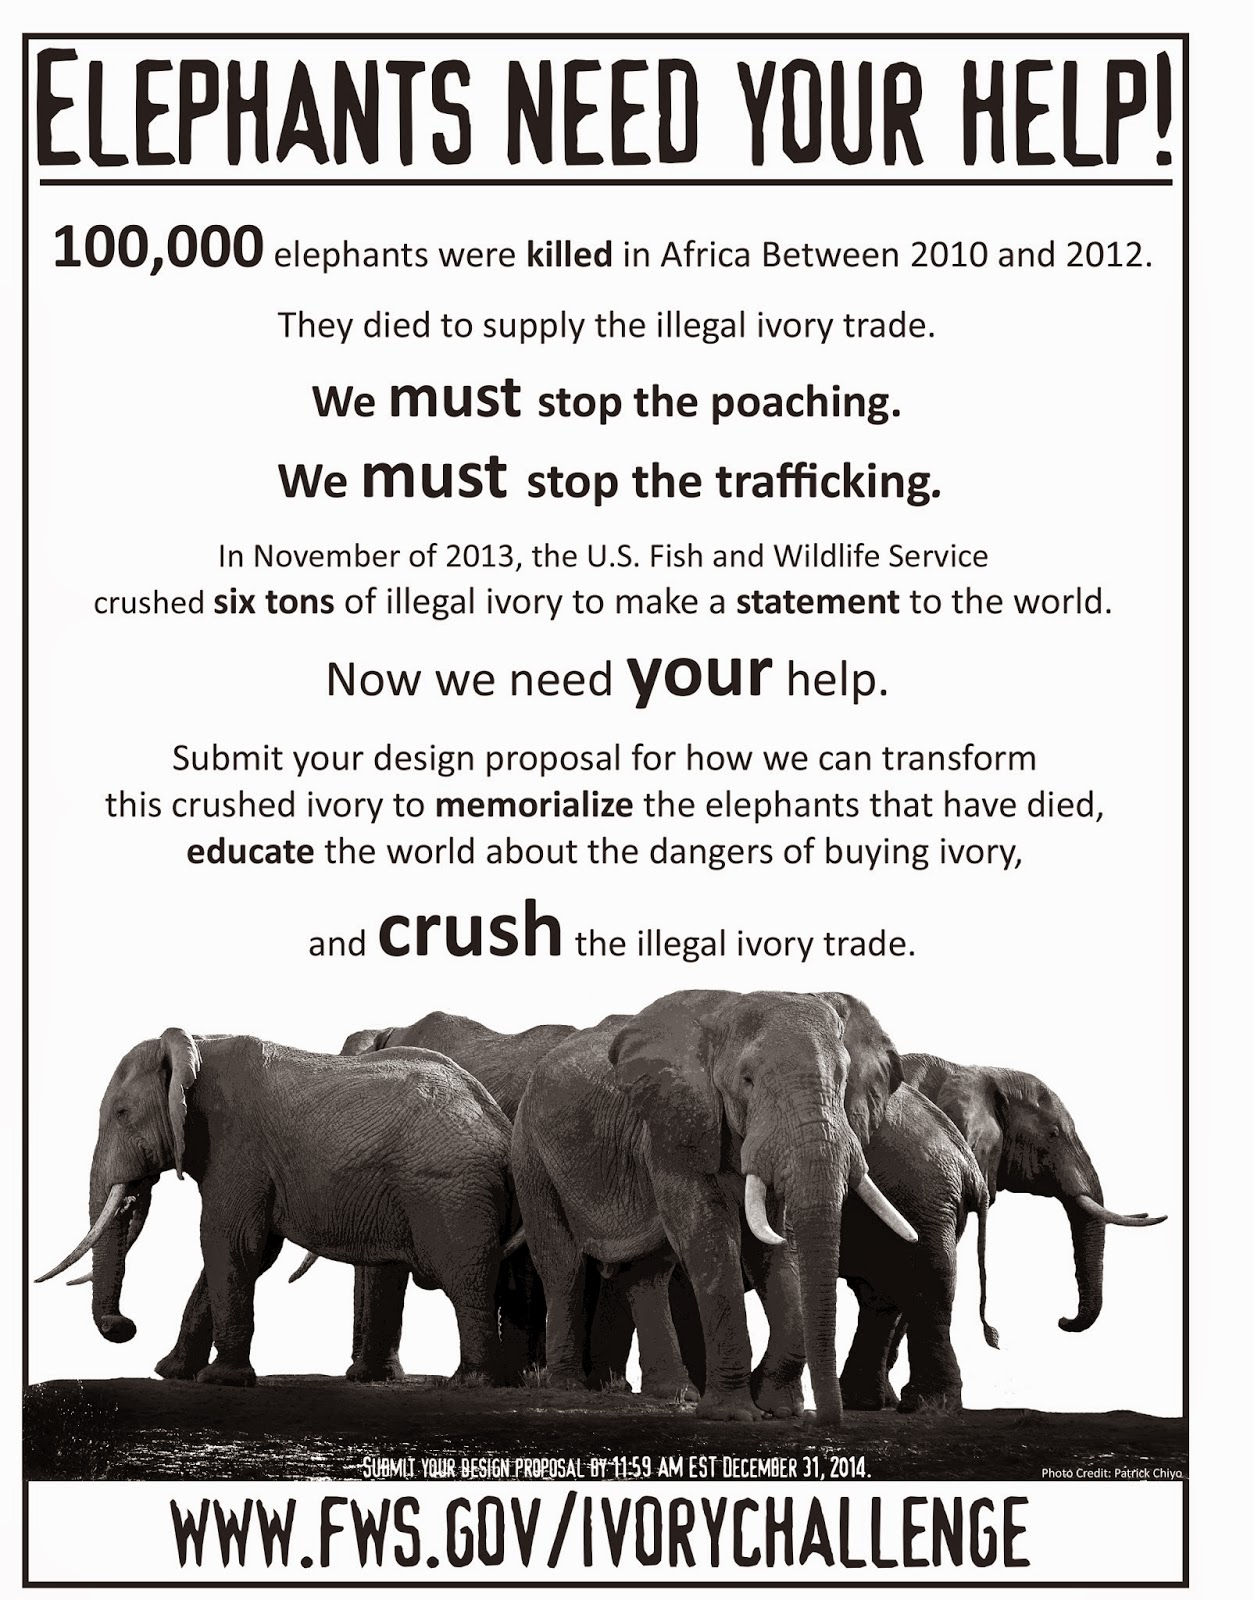 http://www.fws.gov/international/pdf/crushed-ivory-design-poster.pdf